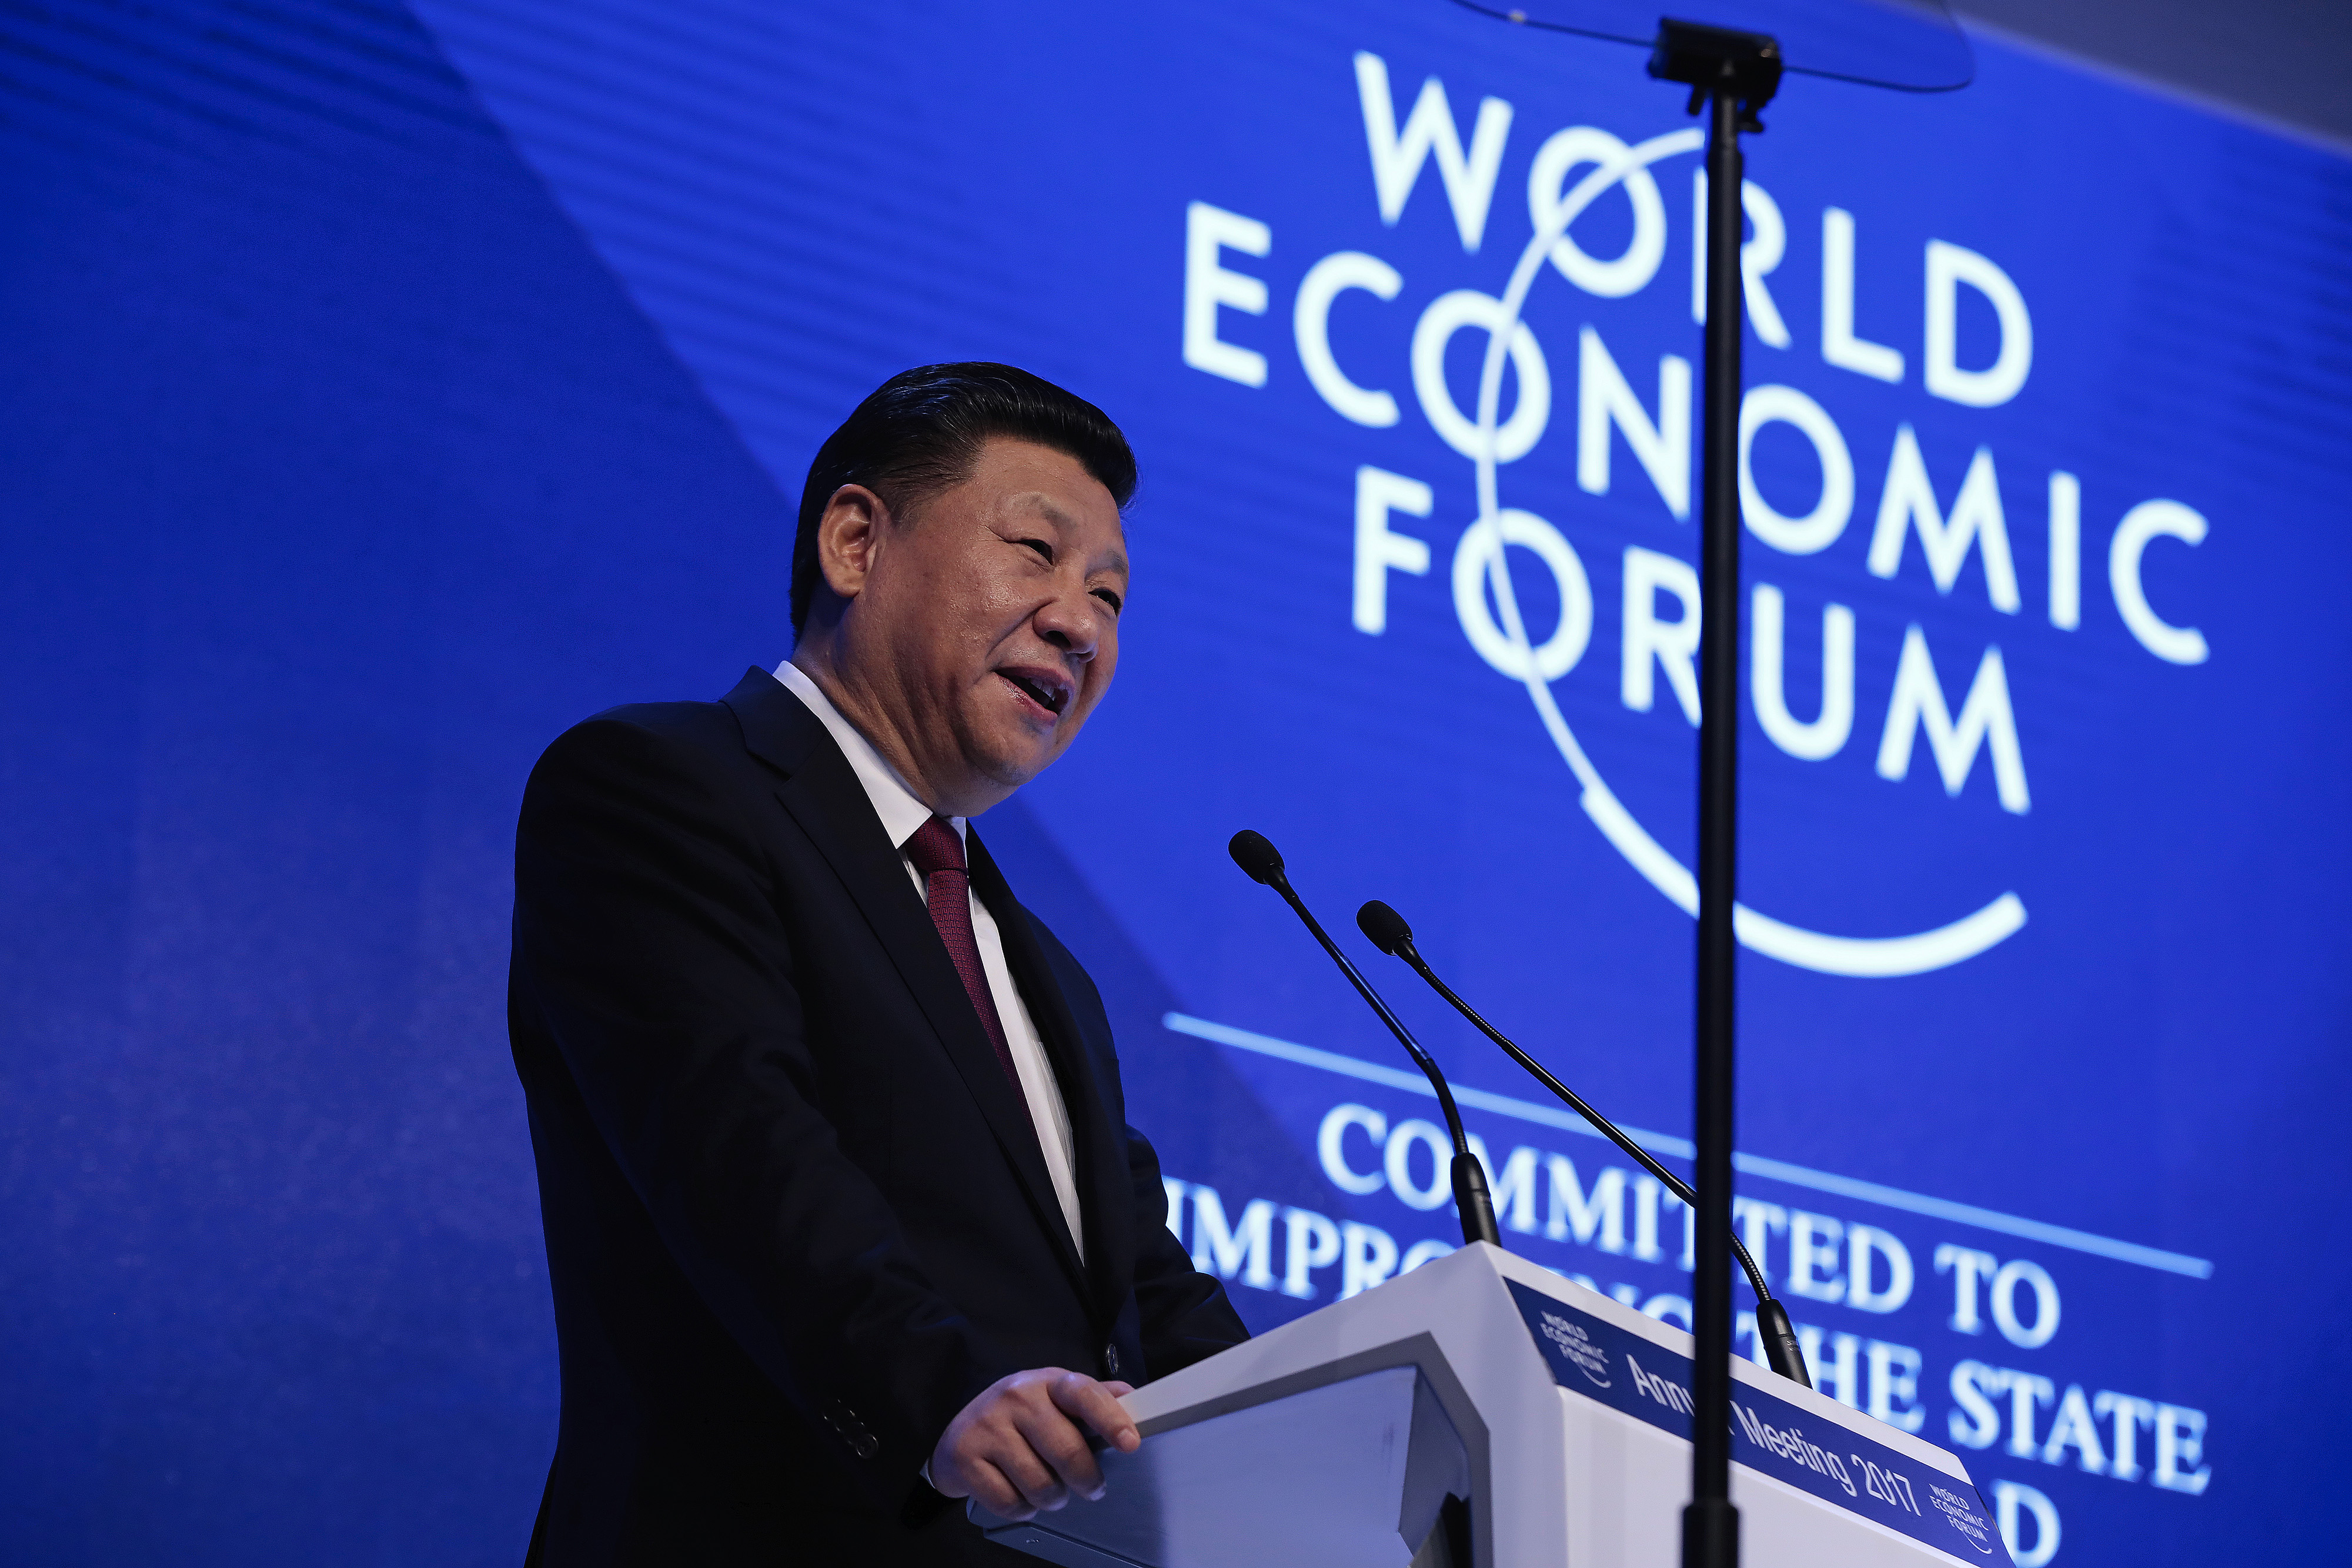 Xi Jinping, China's President, speaks during the opening plenary session of the World Economic Forum annual meeting in Davos, Switzerland, on Tuesday, Jan. 17, 2017